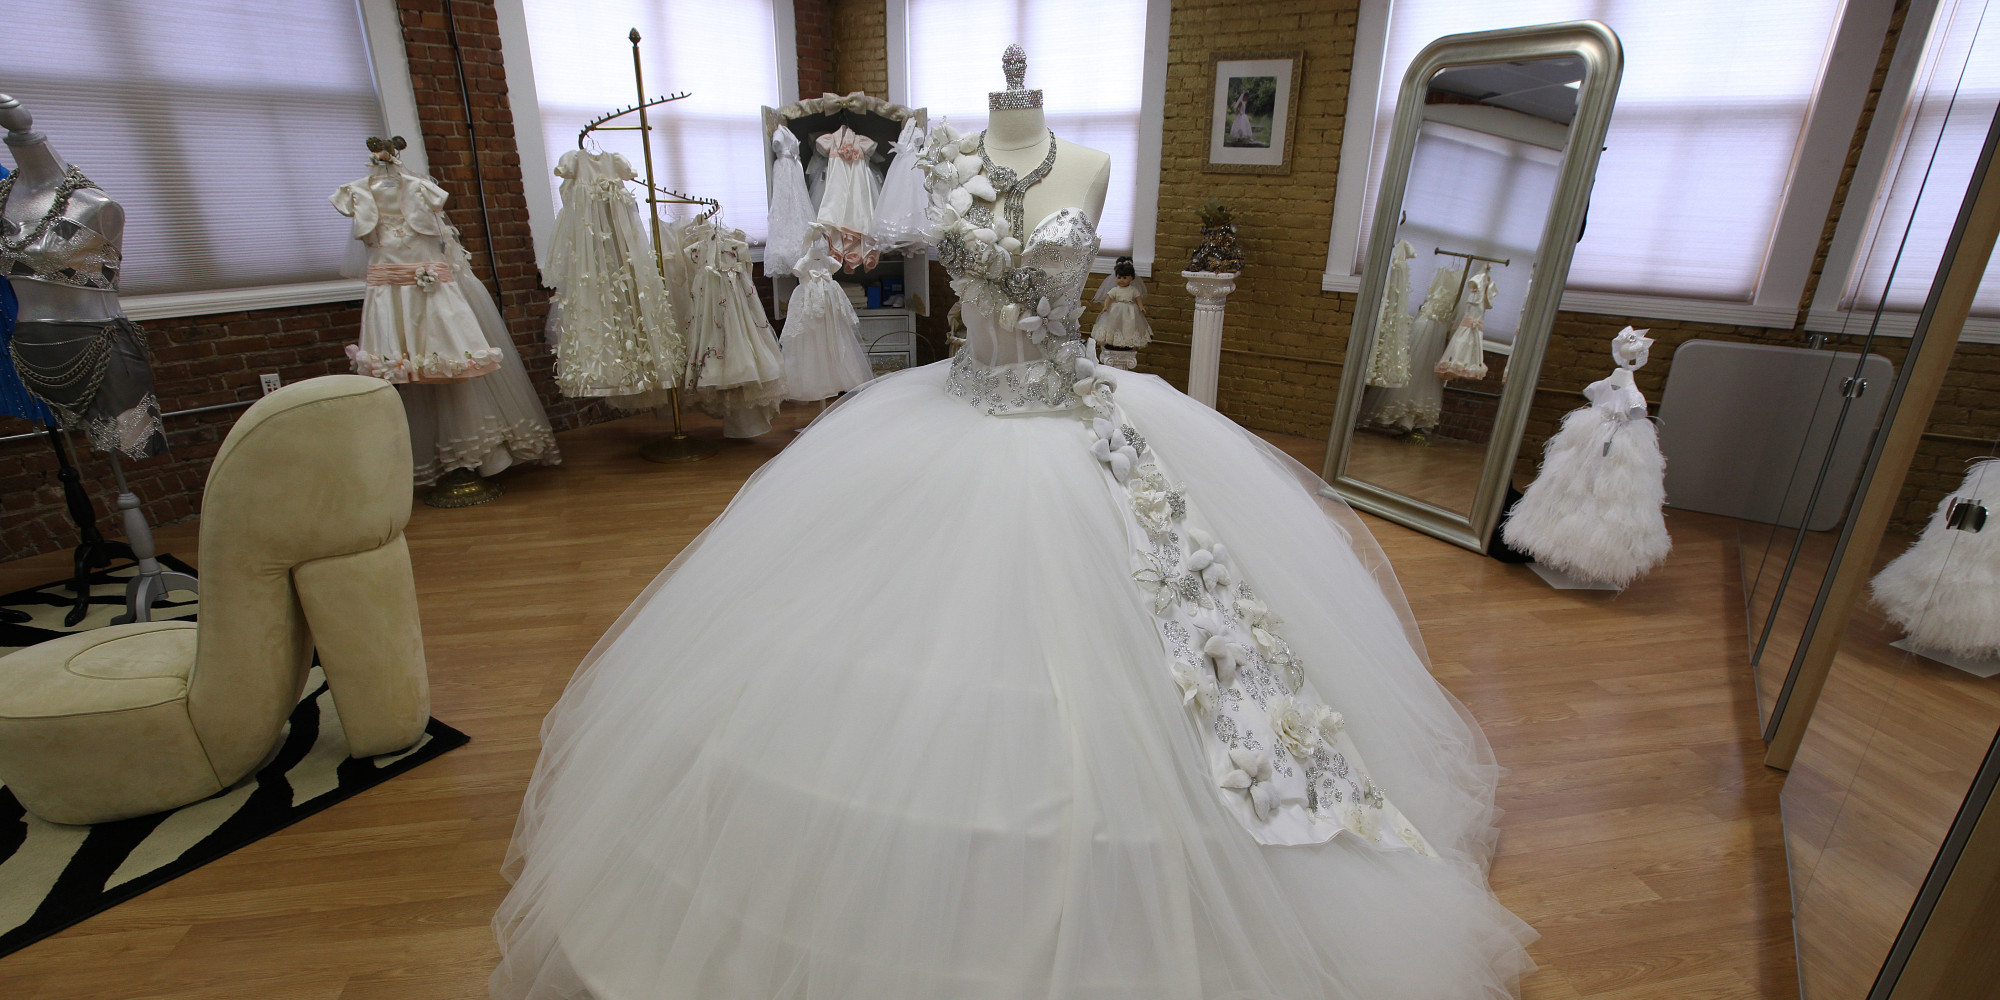 Matrimonio Gipsy Hill : Pound wedding dresses bedazzled in jewels this gypsy